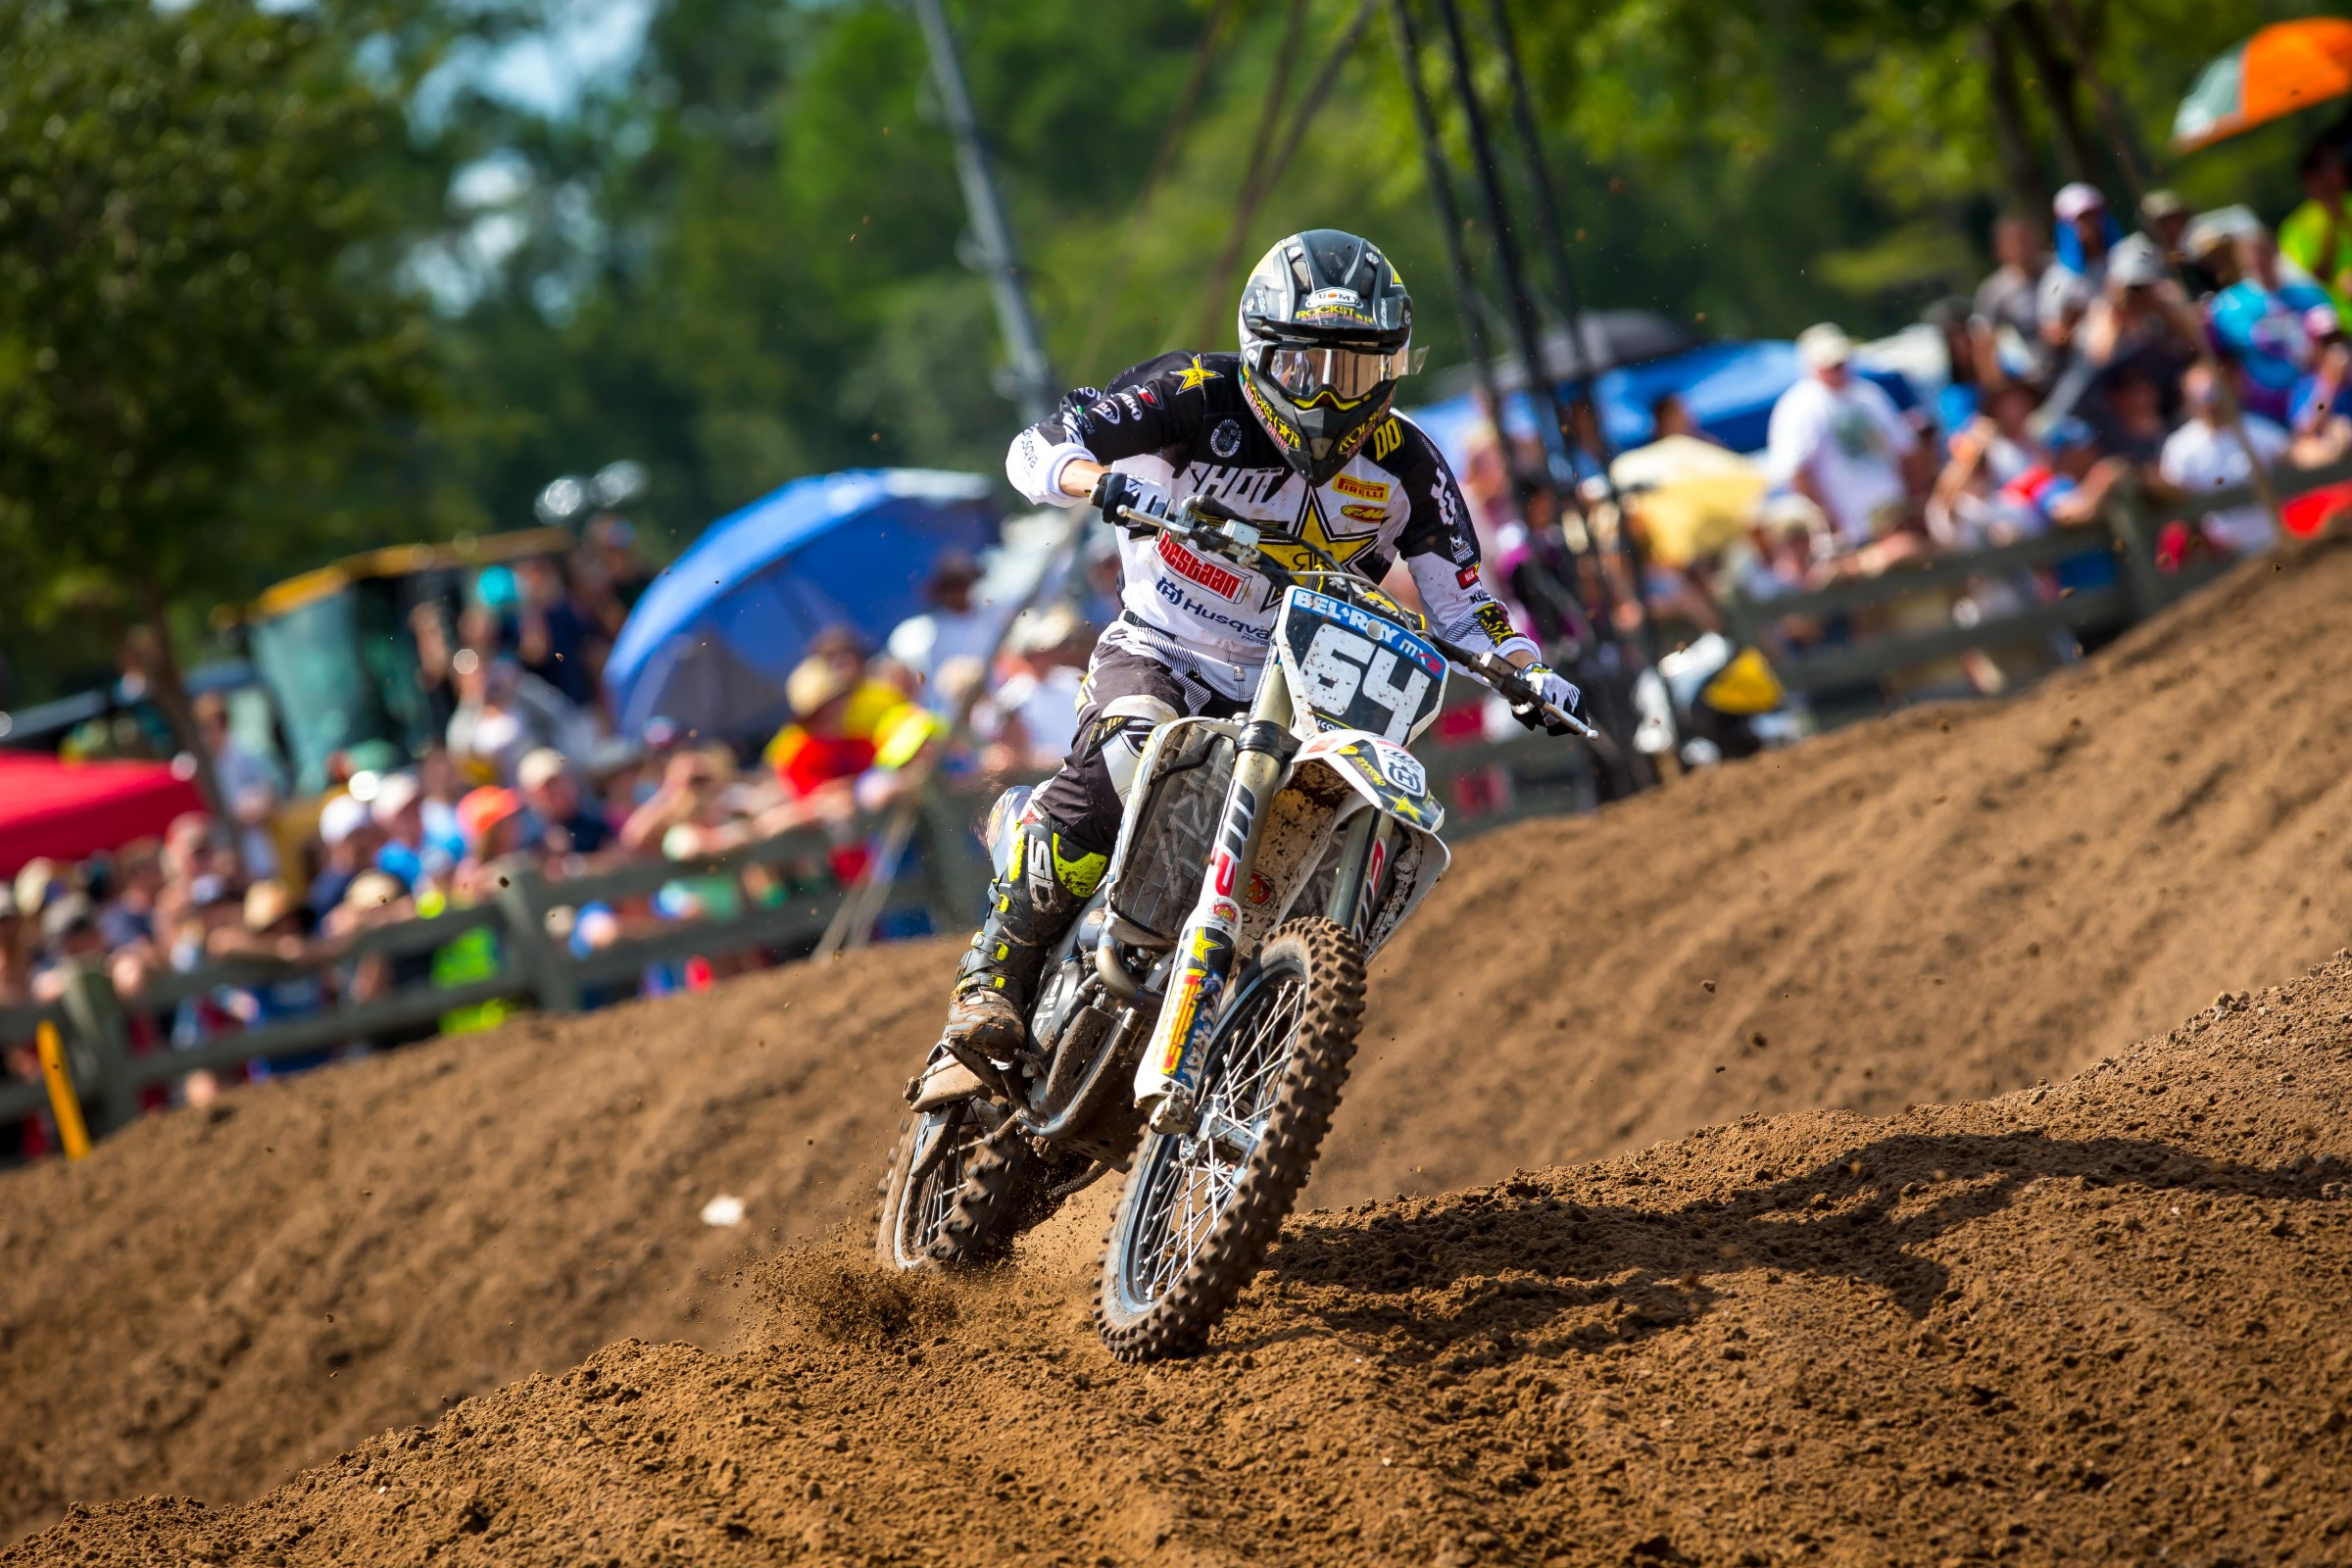 Thomas Covington finished third overall in MX2.